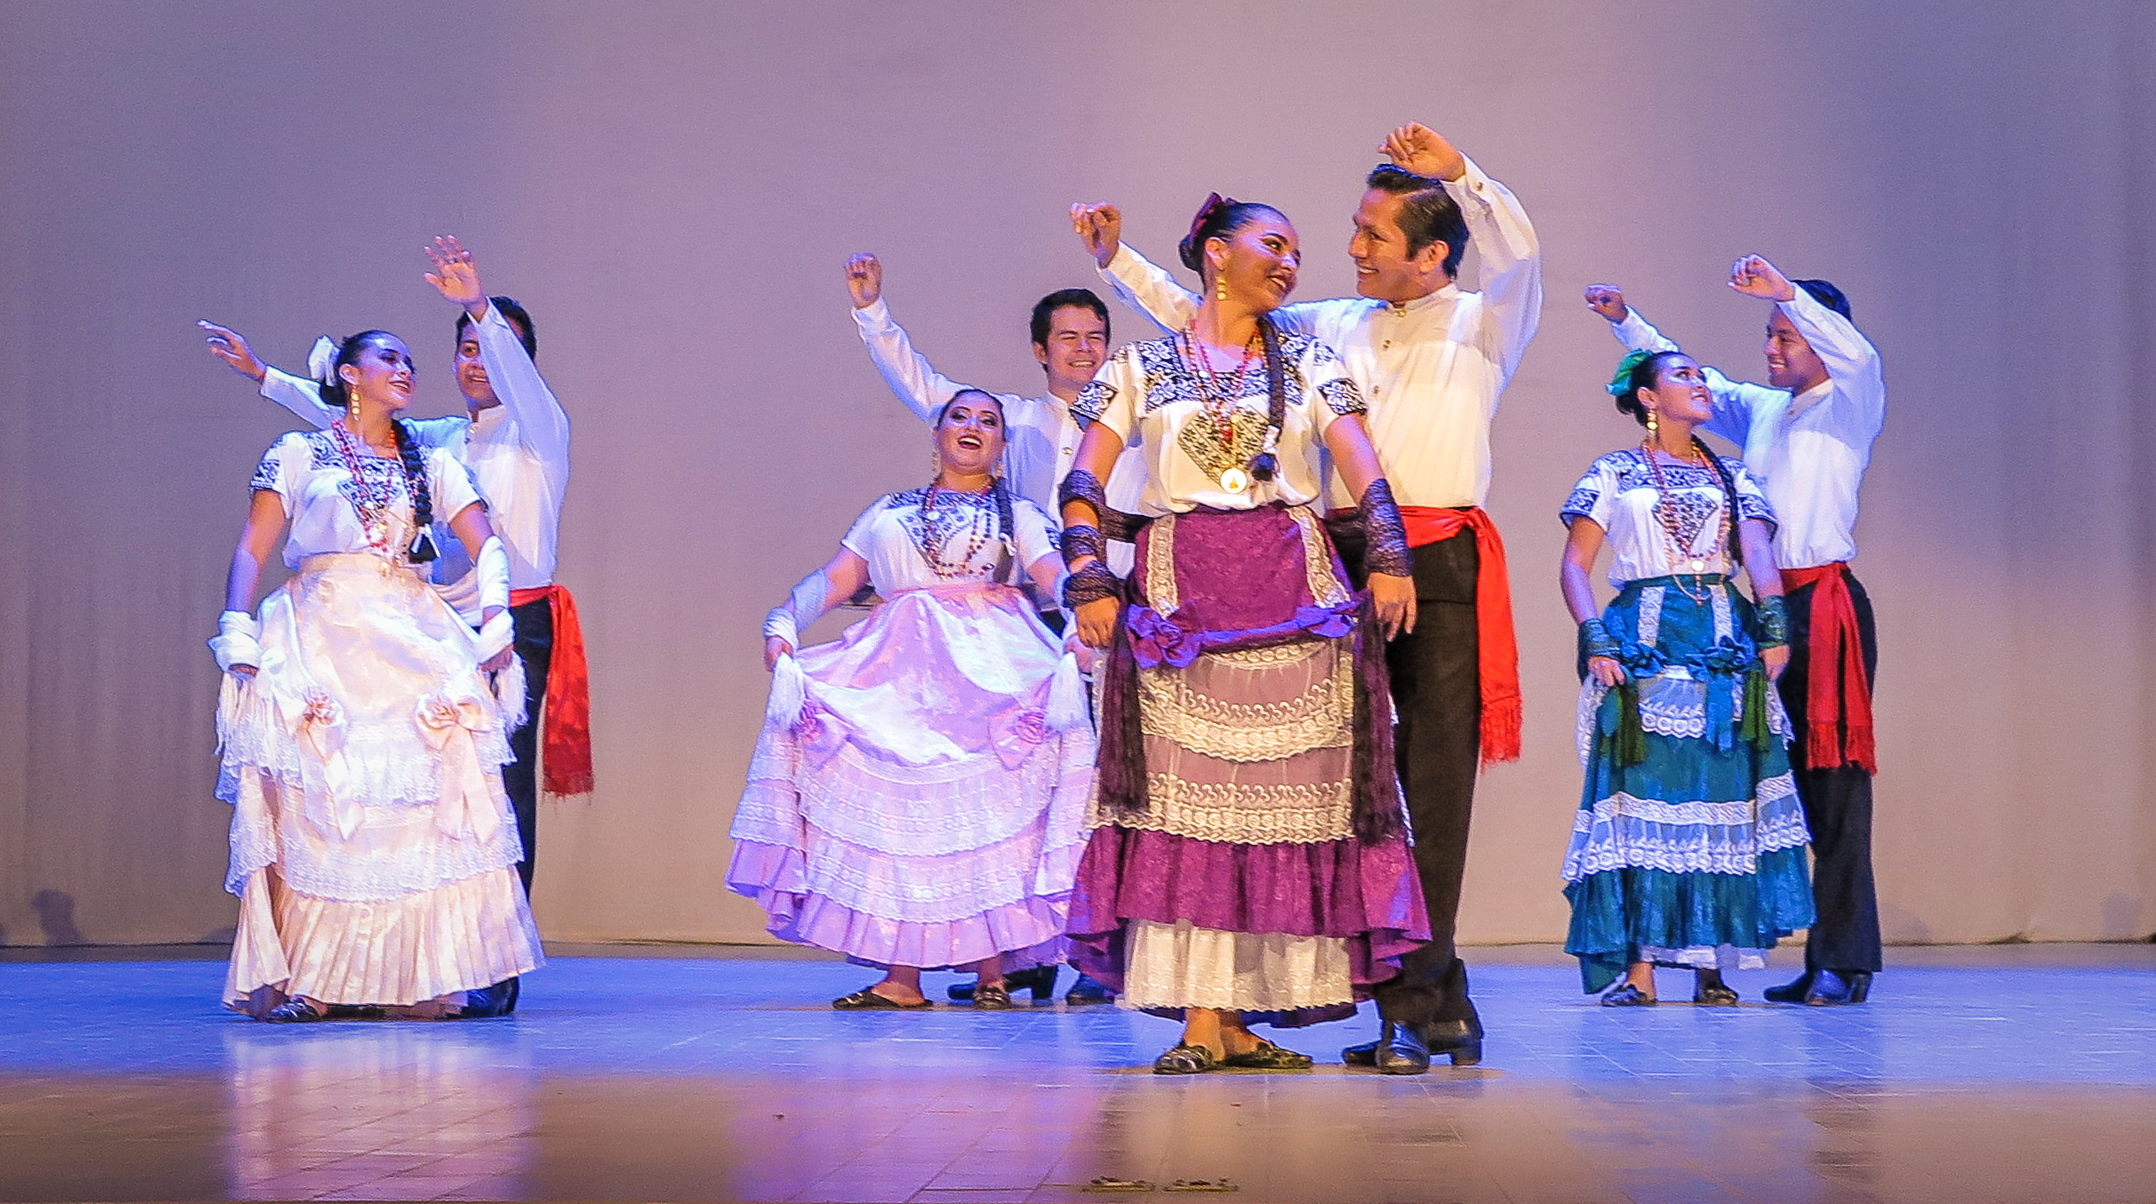 Campeche's magnificent Flamenco dancers,